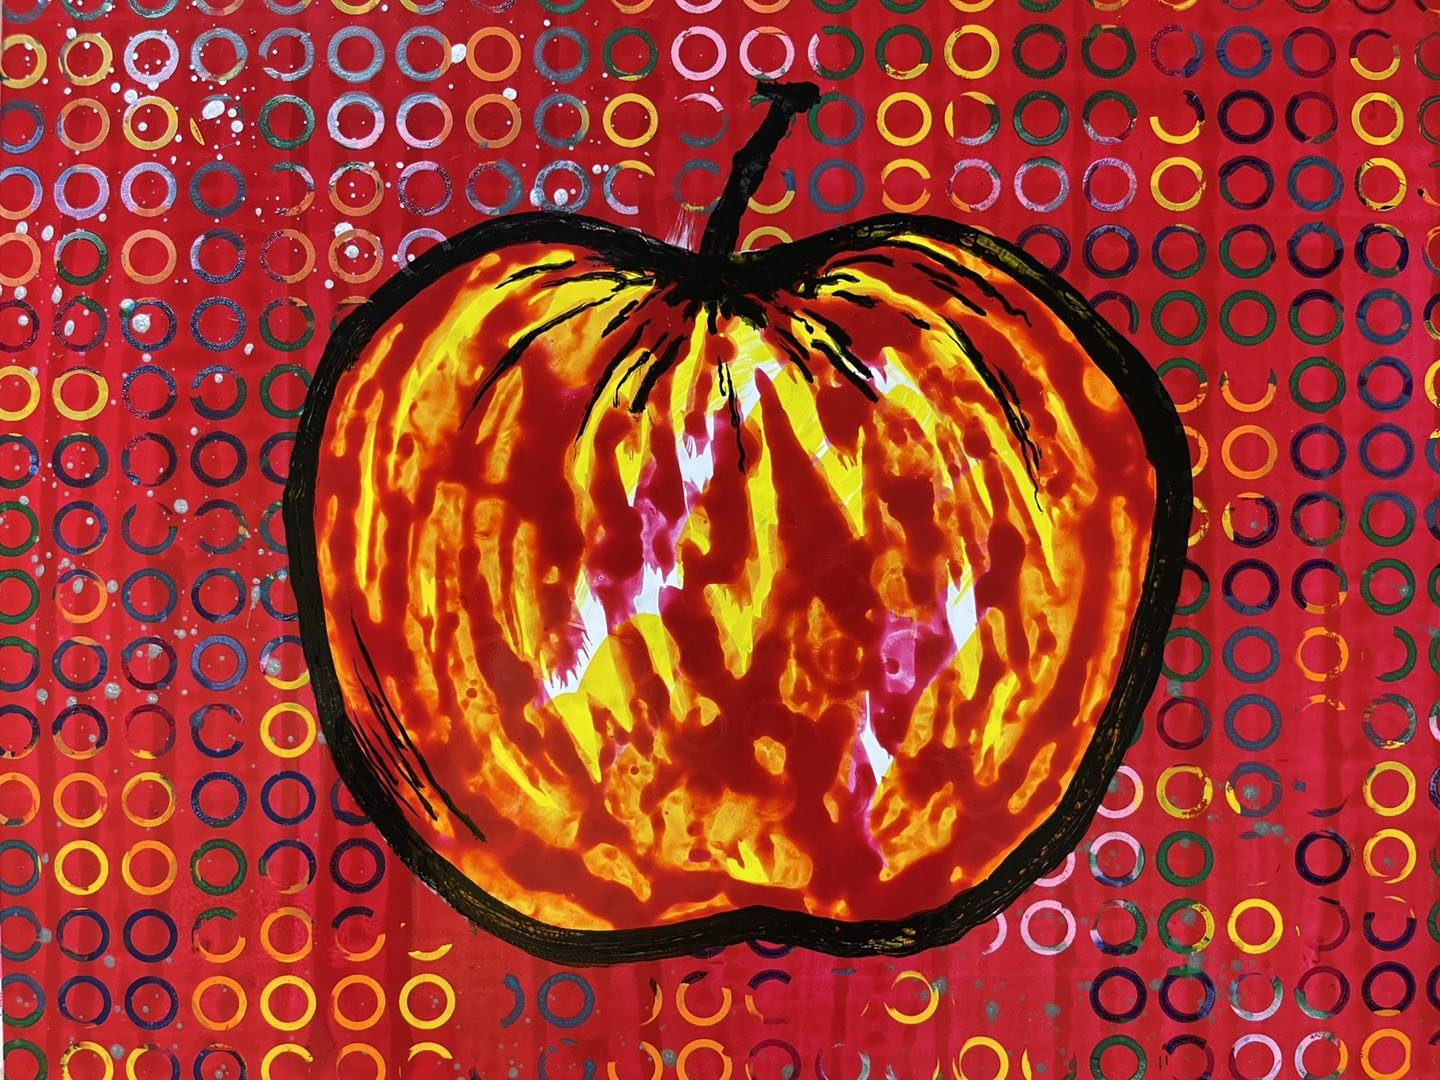 exhibition endless desire painting of an apple